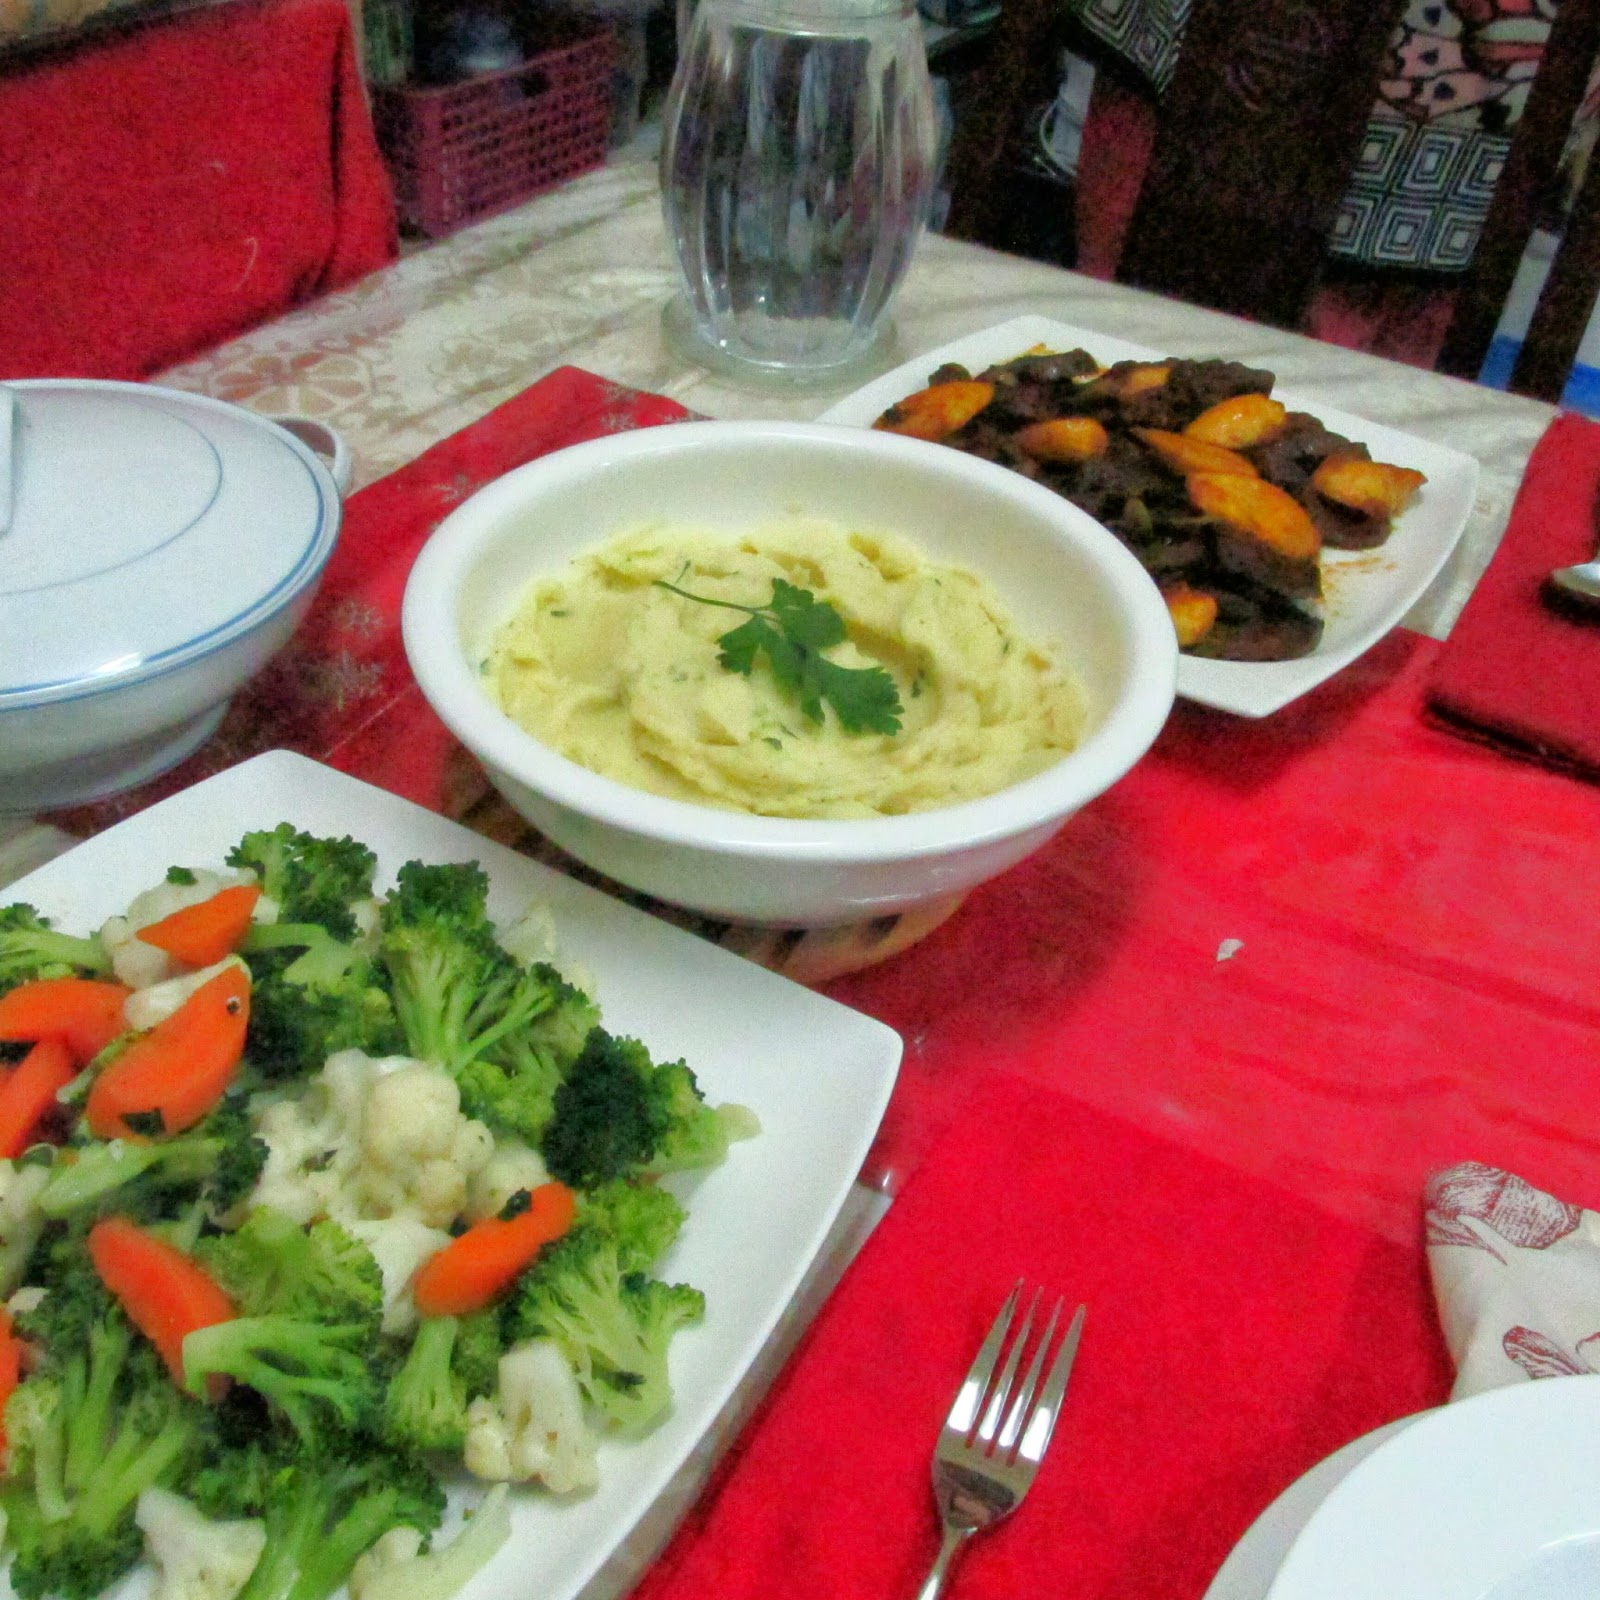 Darlene cooked this: Straciatella, Lengua Estofada, Steamed Vegetables, Mashed Potatoes